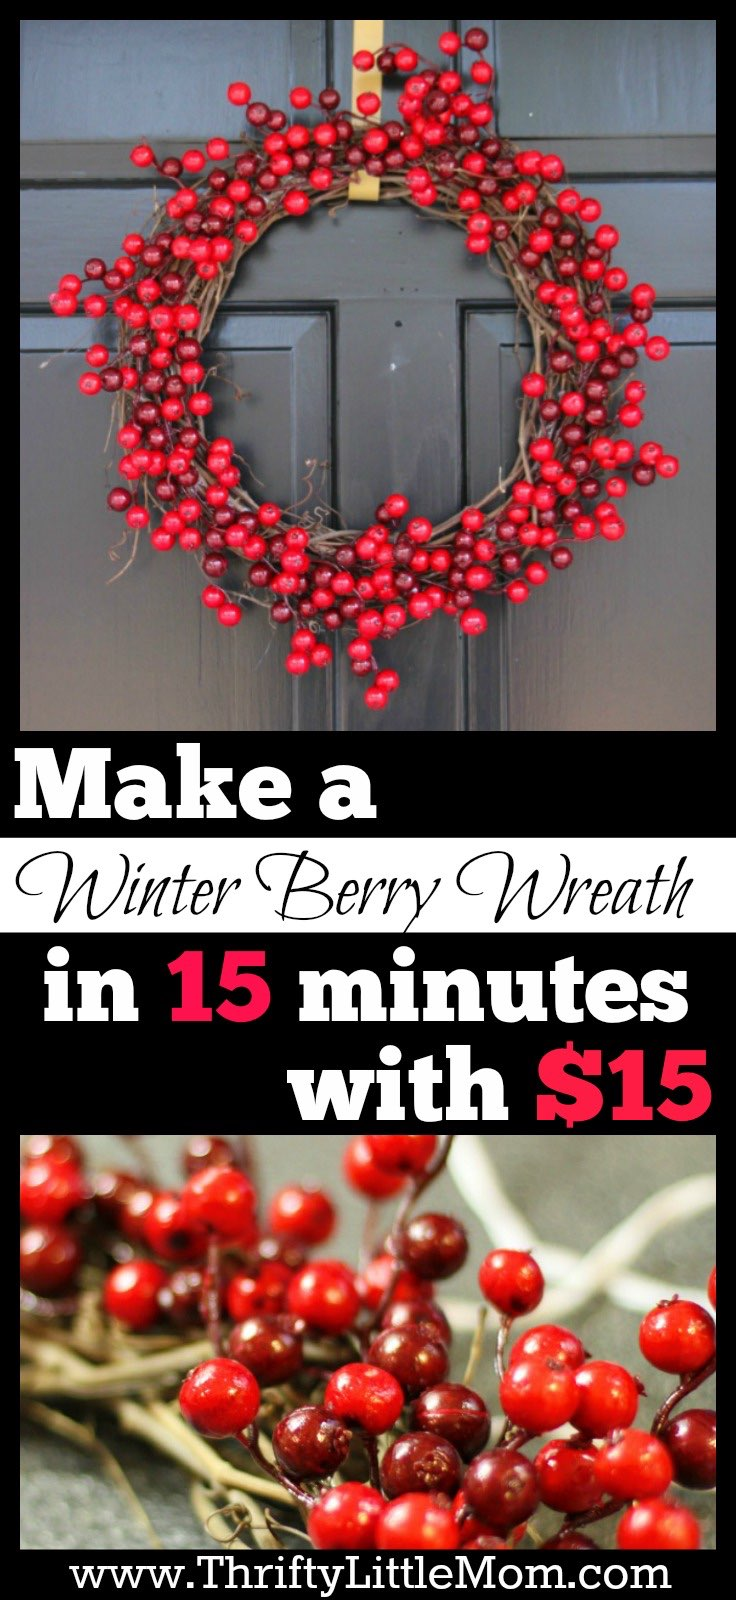 make-a-winter-berry-wreath-in-15-minutes-with-15